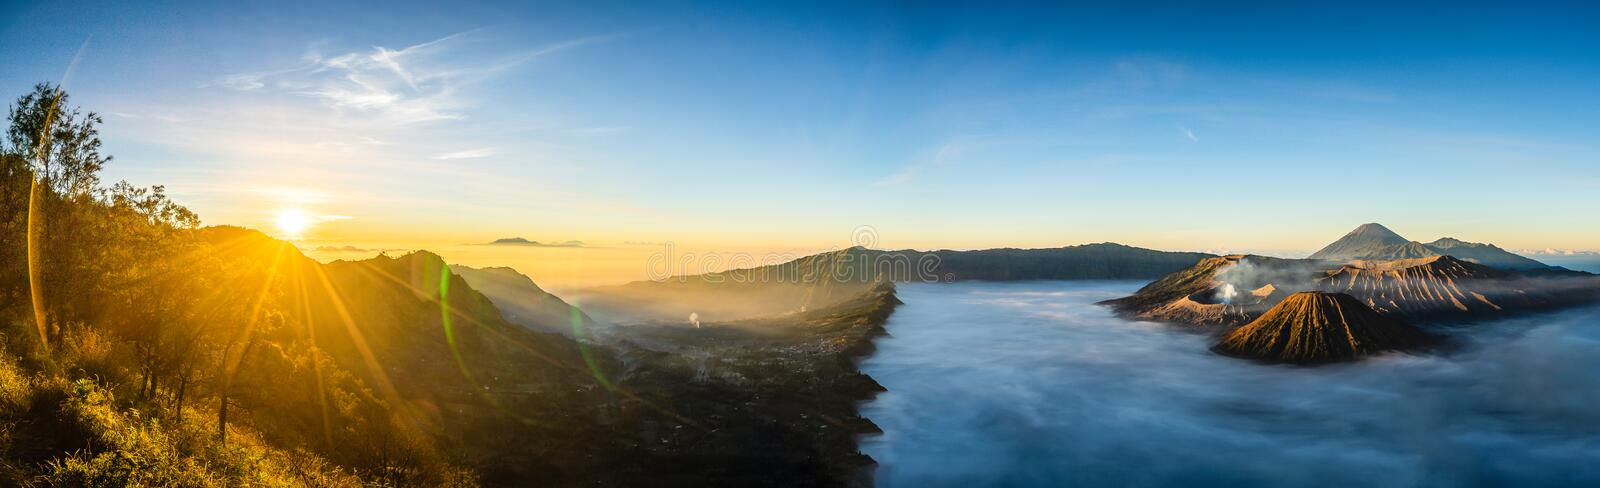 Mount Bromo with Sun Rise in Panorama at Java, Indonesia stock image